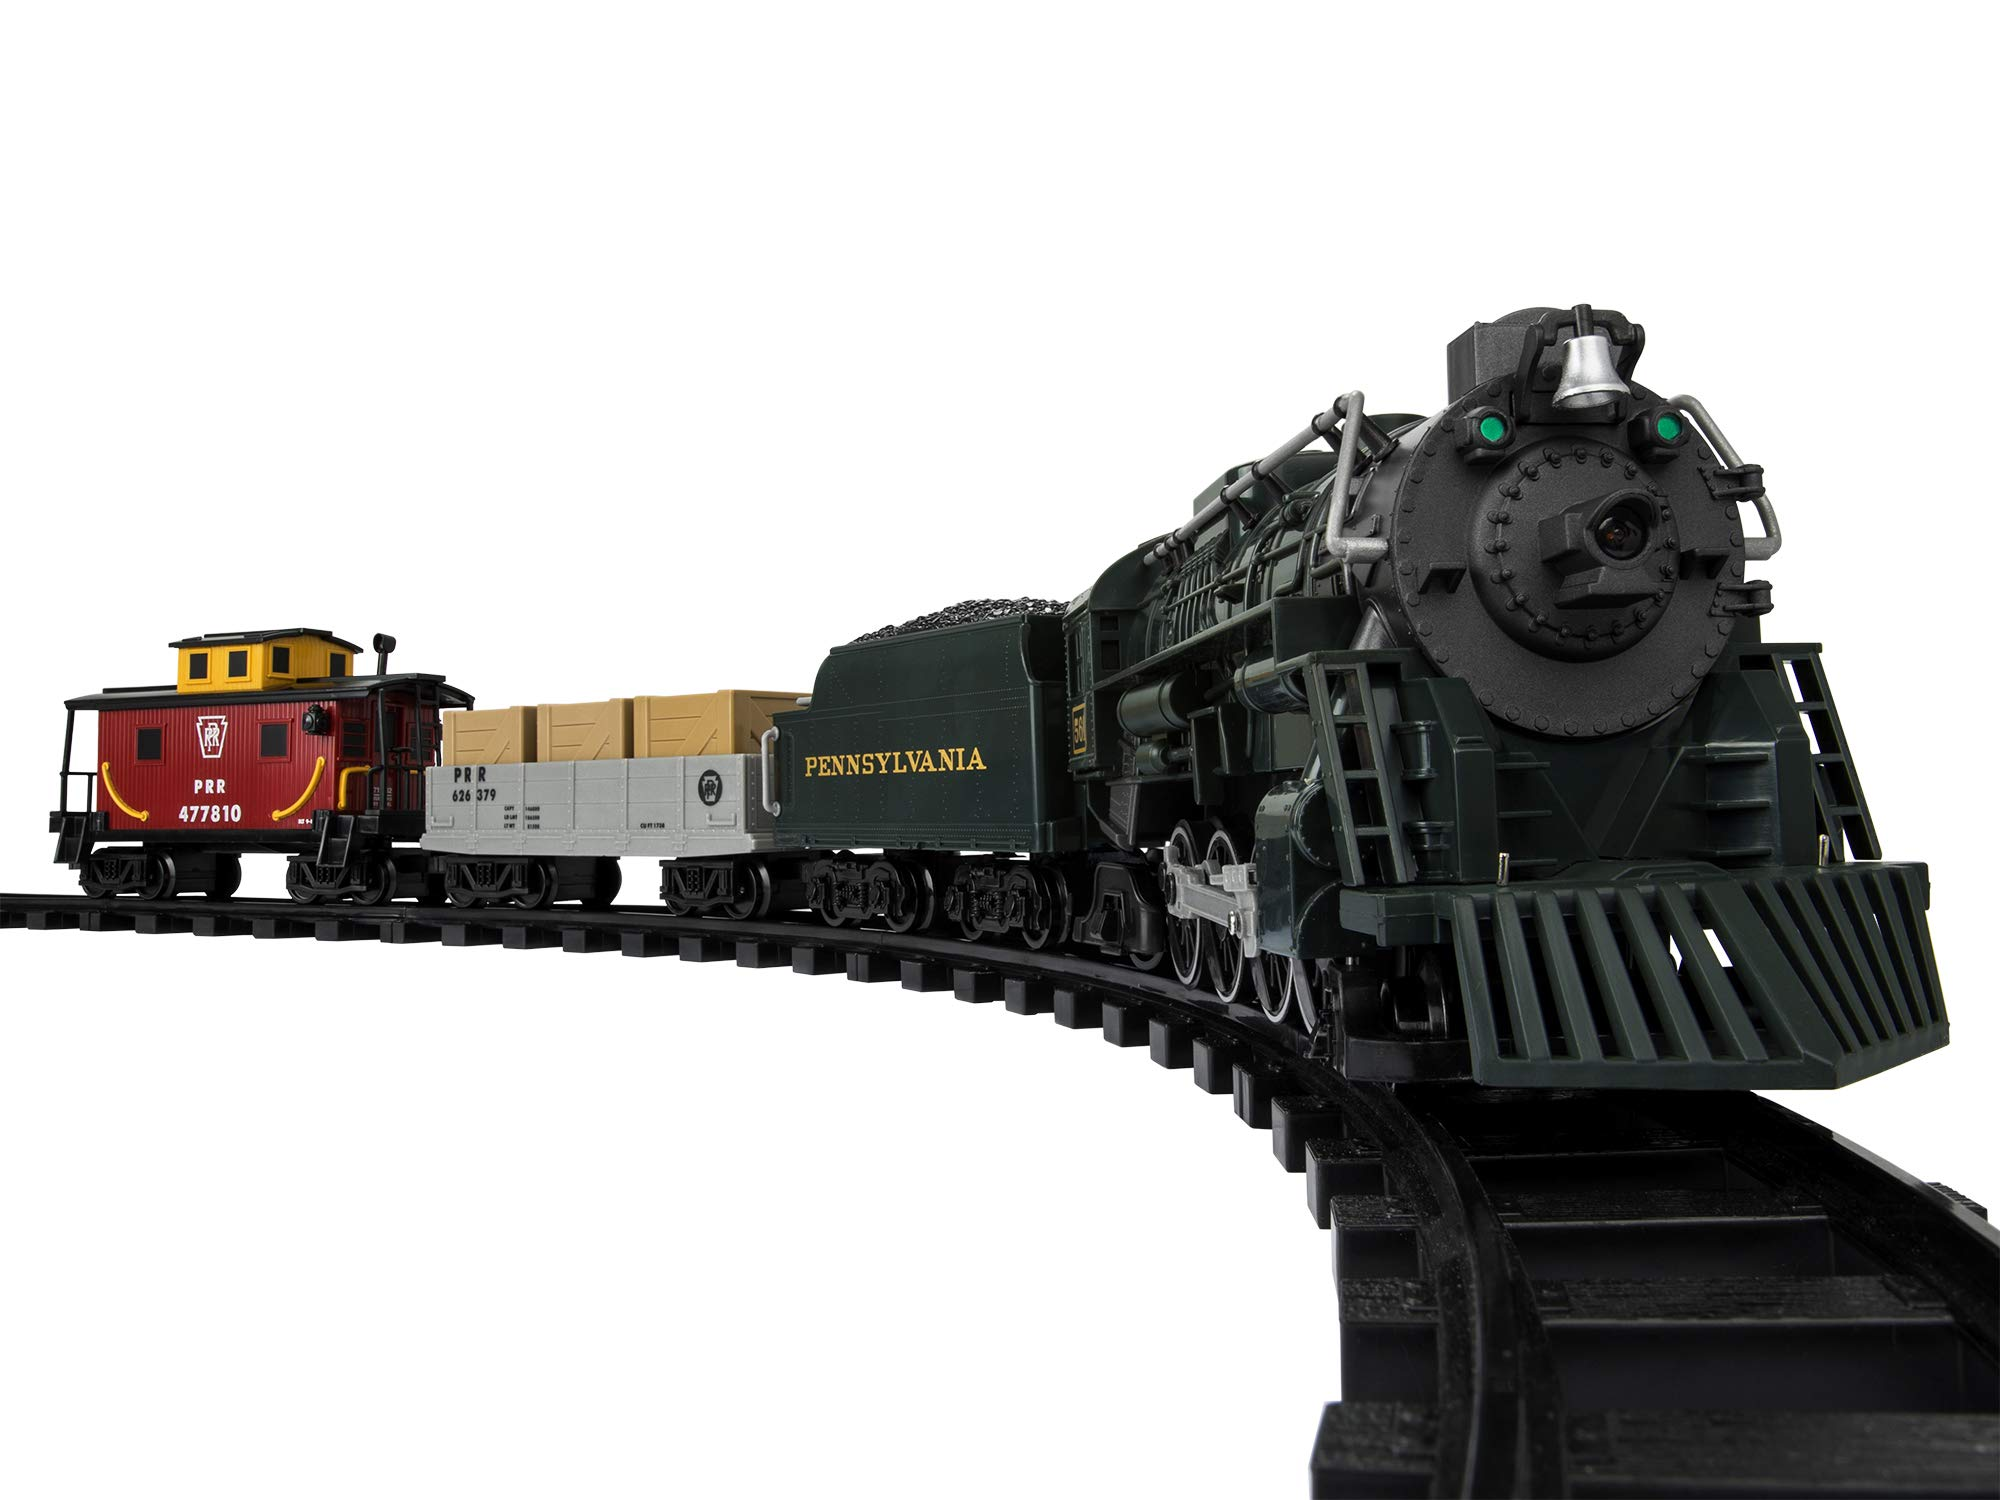 Lionel Pennsylvania Flyer Freight Ready-to-Play Set, Battery-powered Model Train with Remote